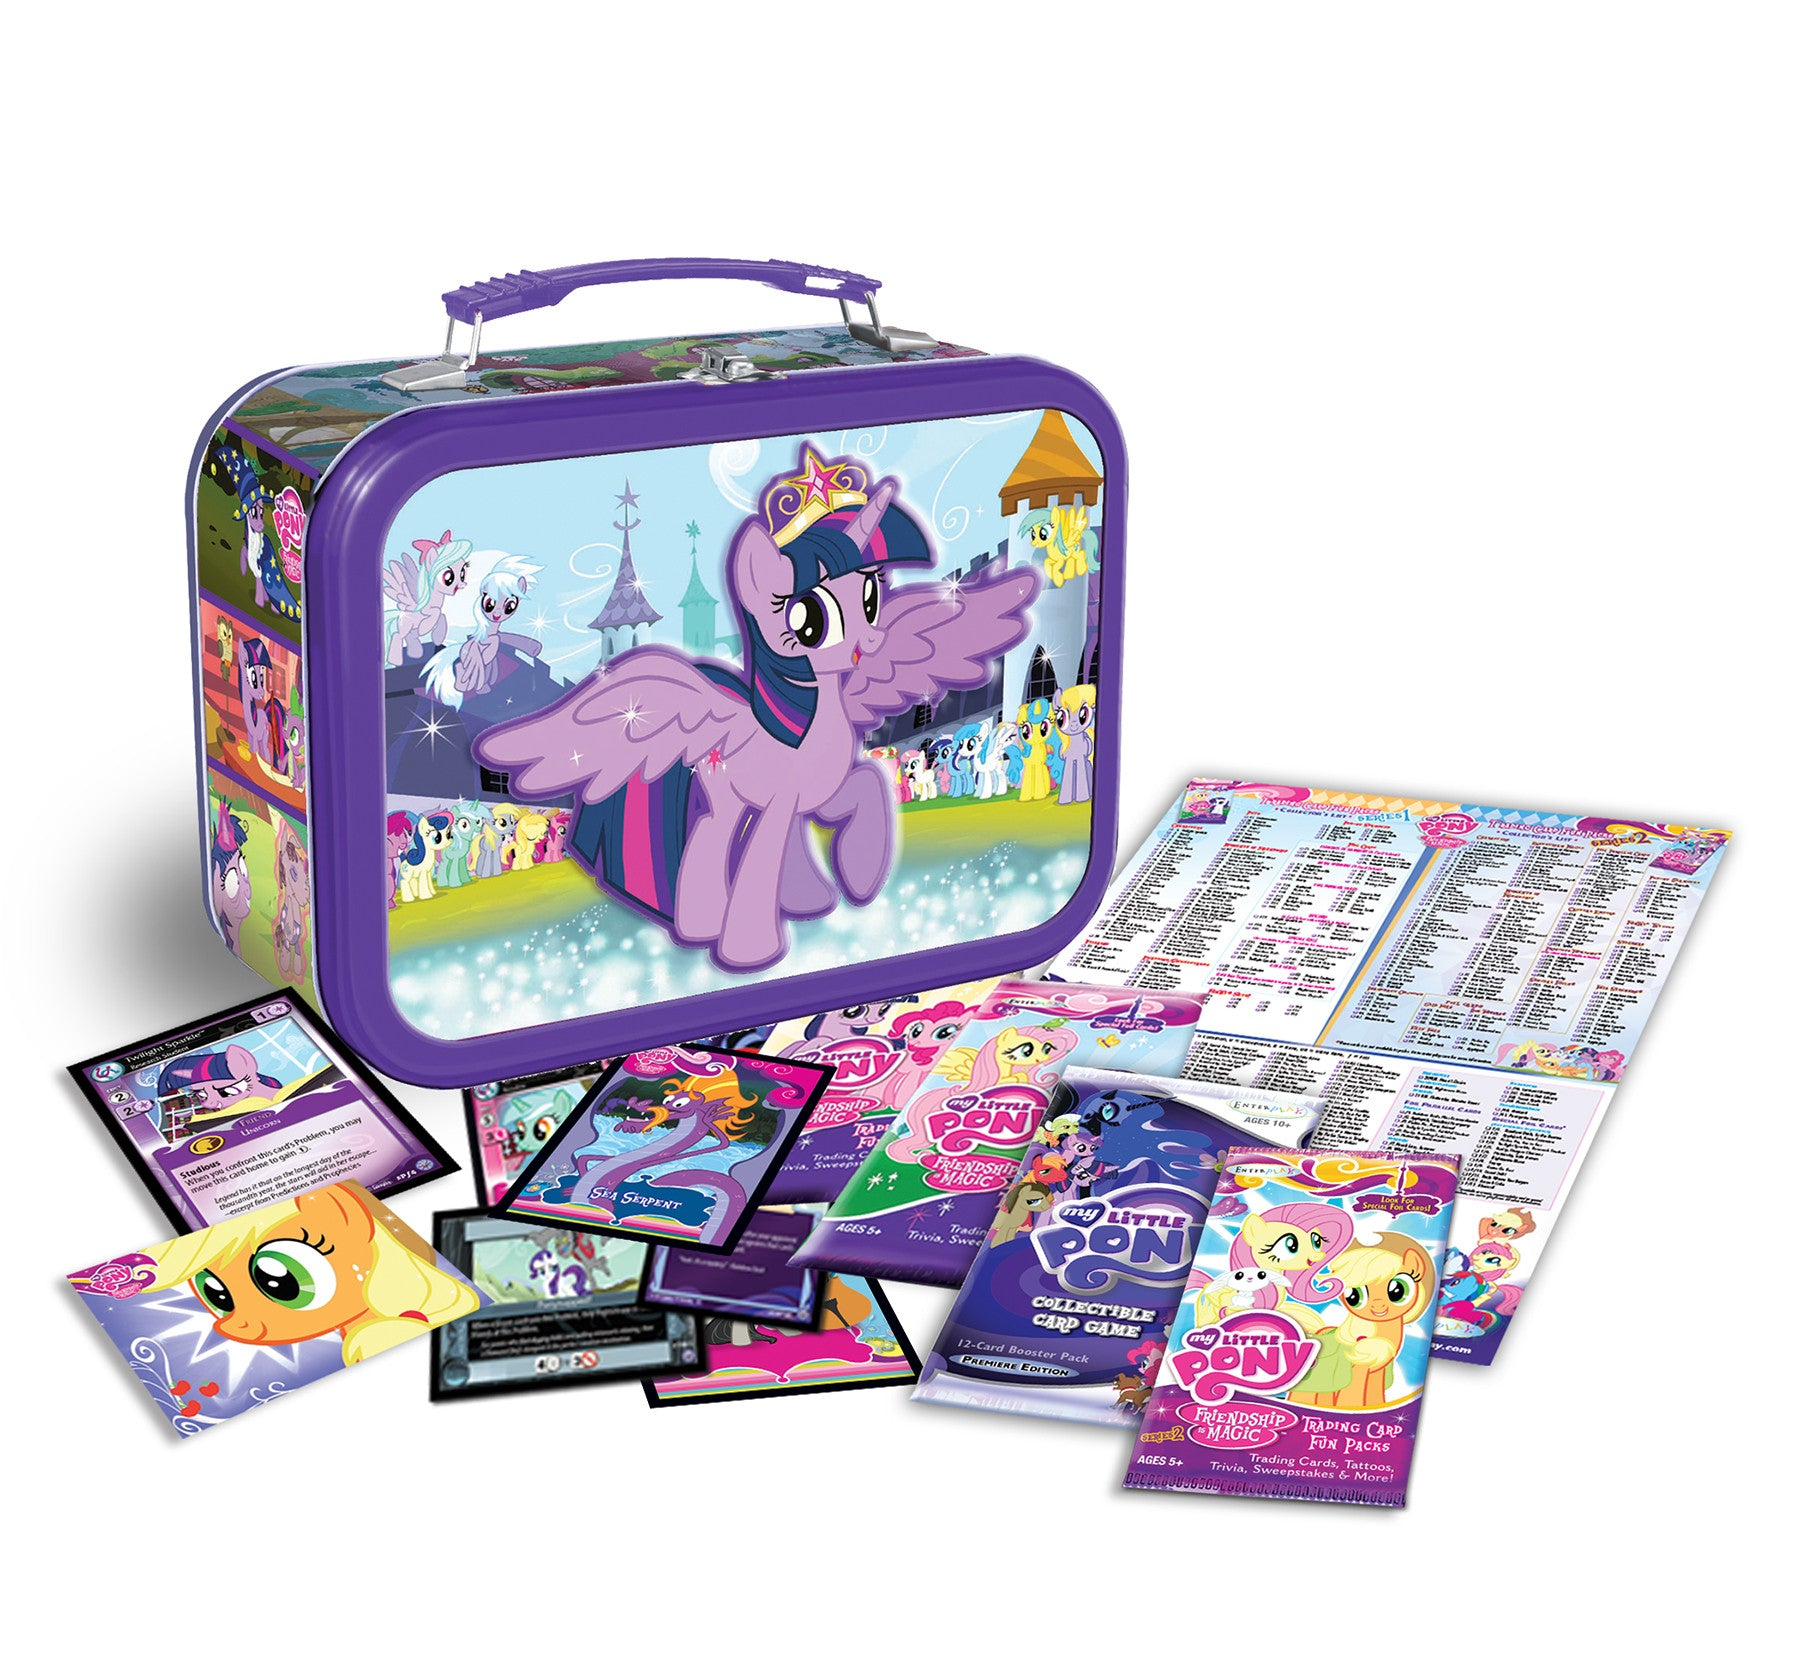 Https Daily Enterplay Store Luggage Tag Pinkie Pie Mlp Twilight Tin C4baeb43 9e1d 4818 A947 8cebb103dff0v1419963502